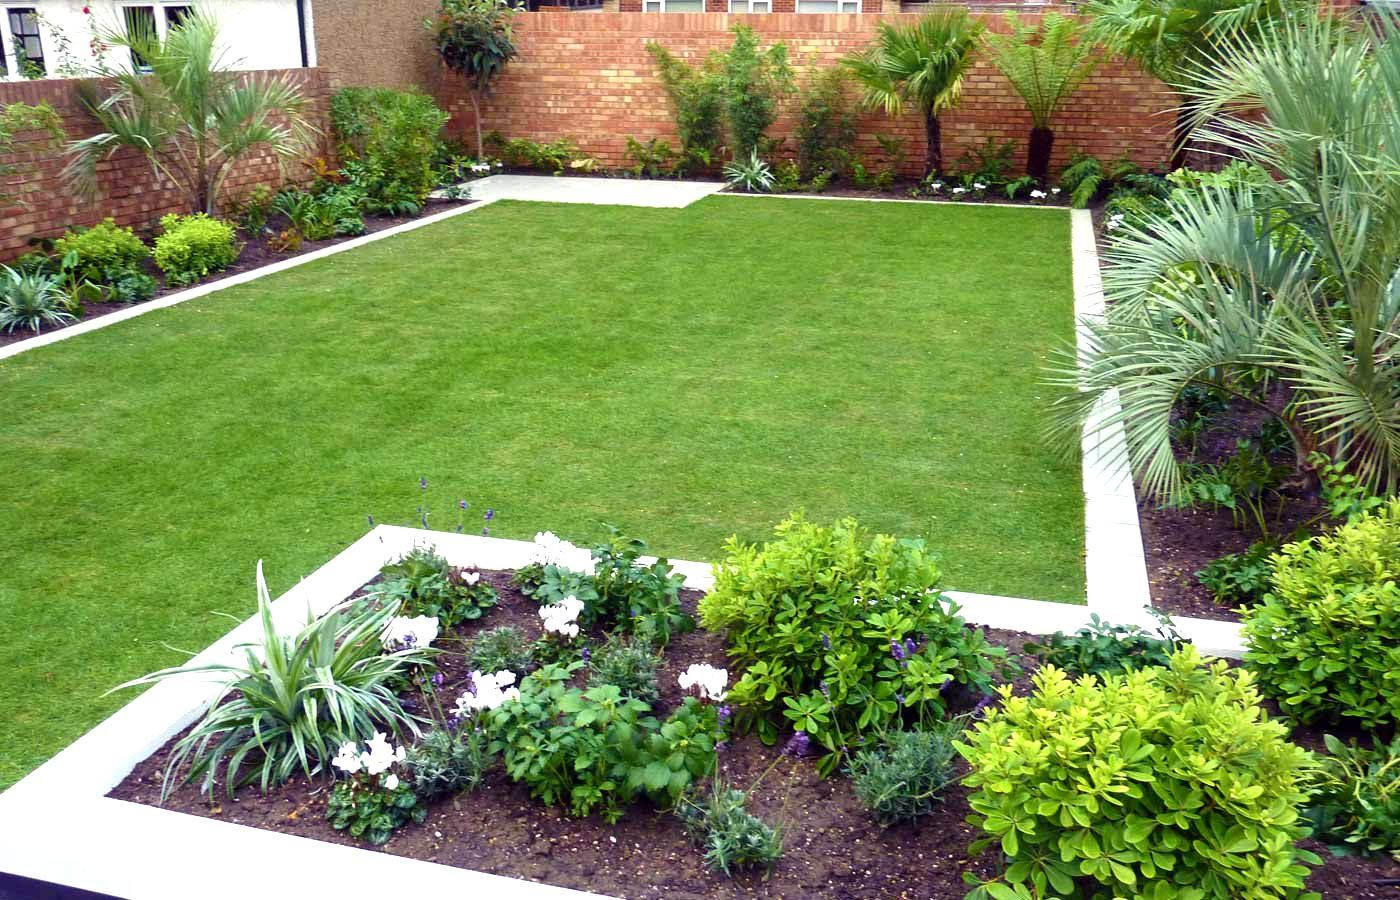 Simple garden designs no fret small garden design for Little garden design